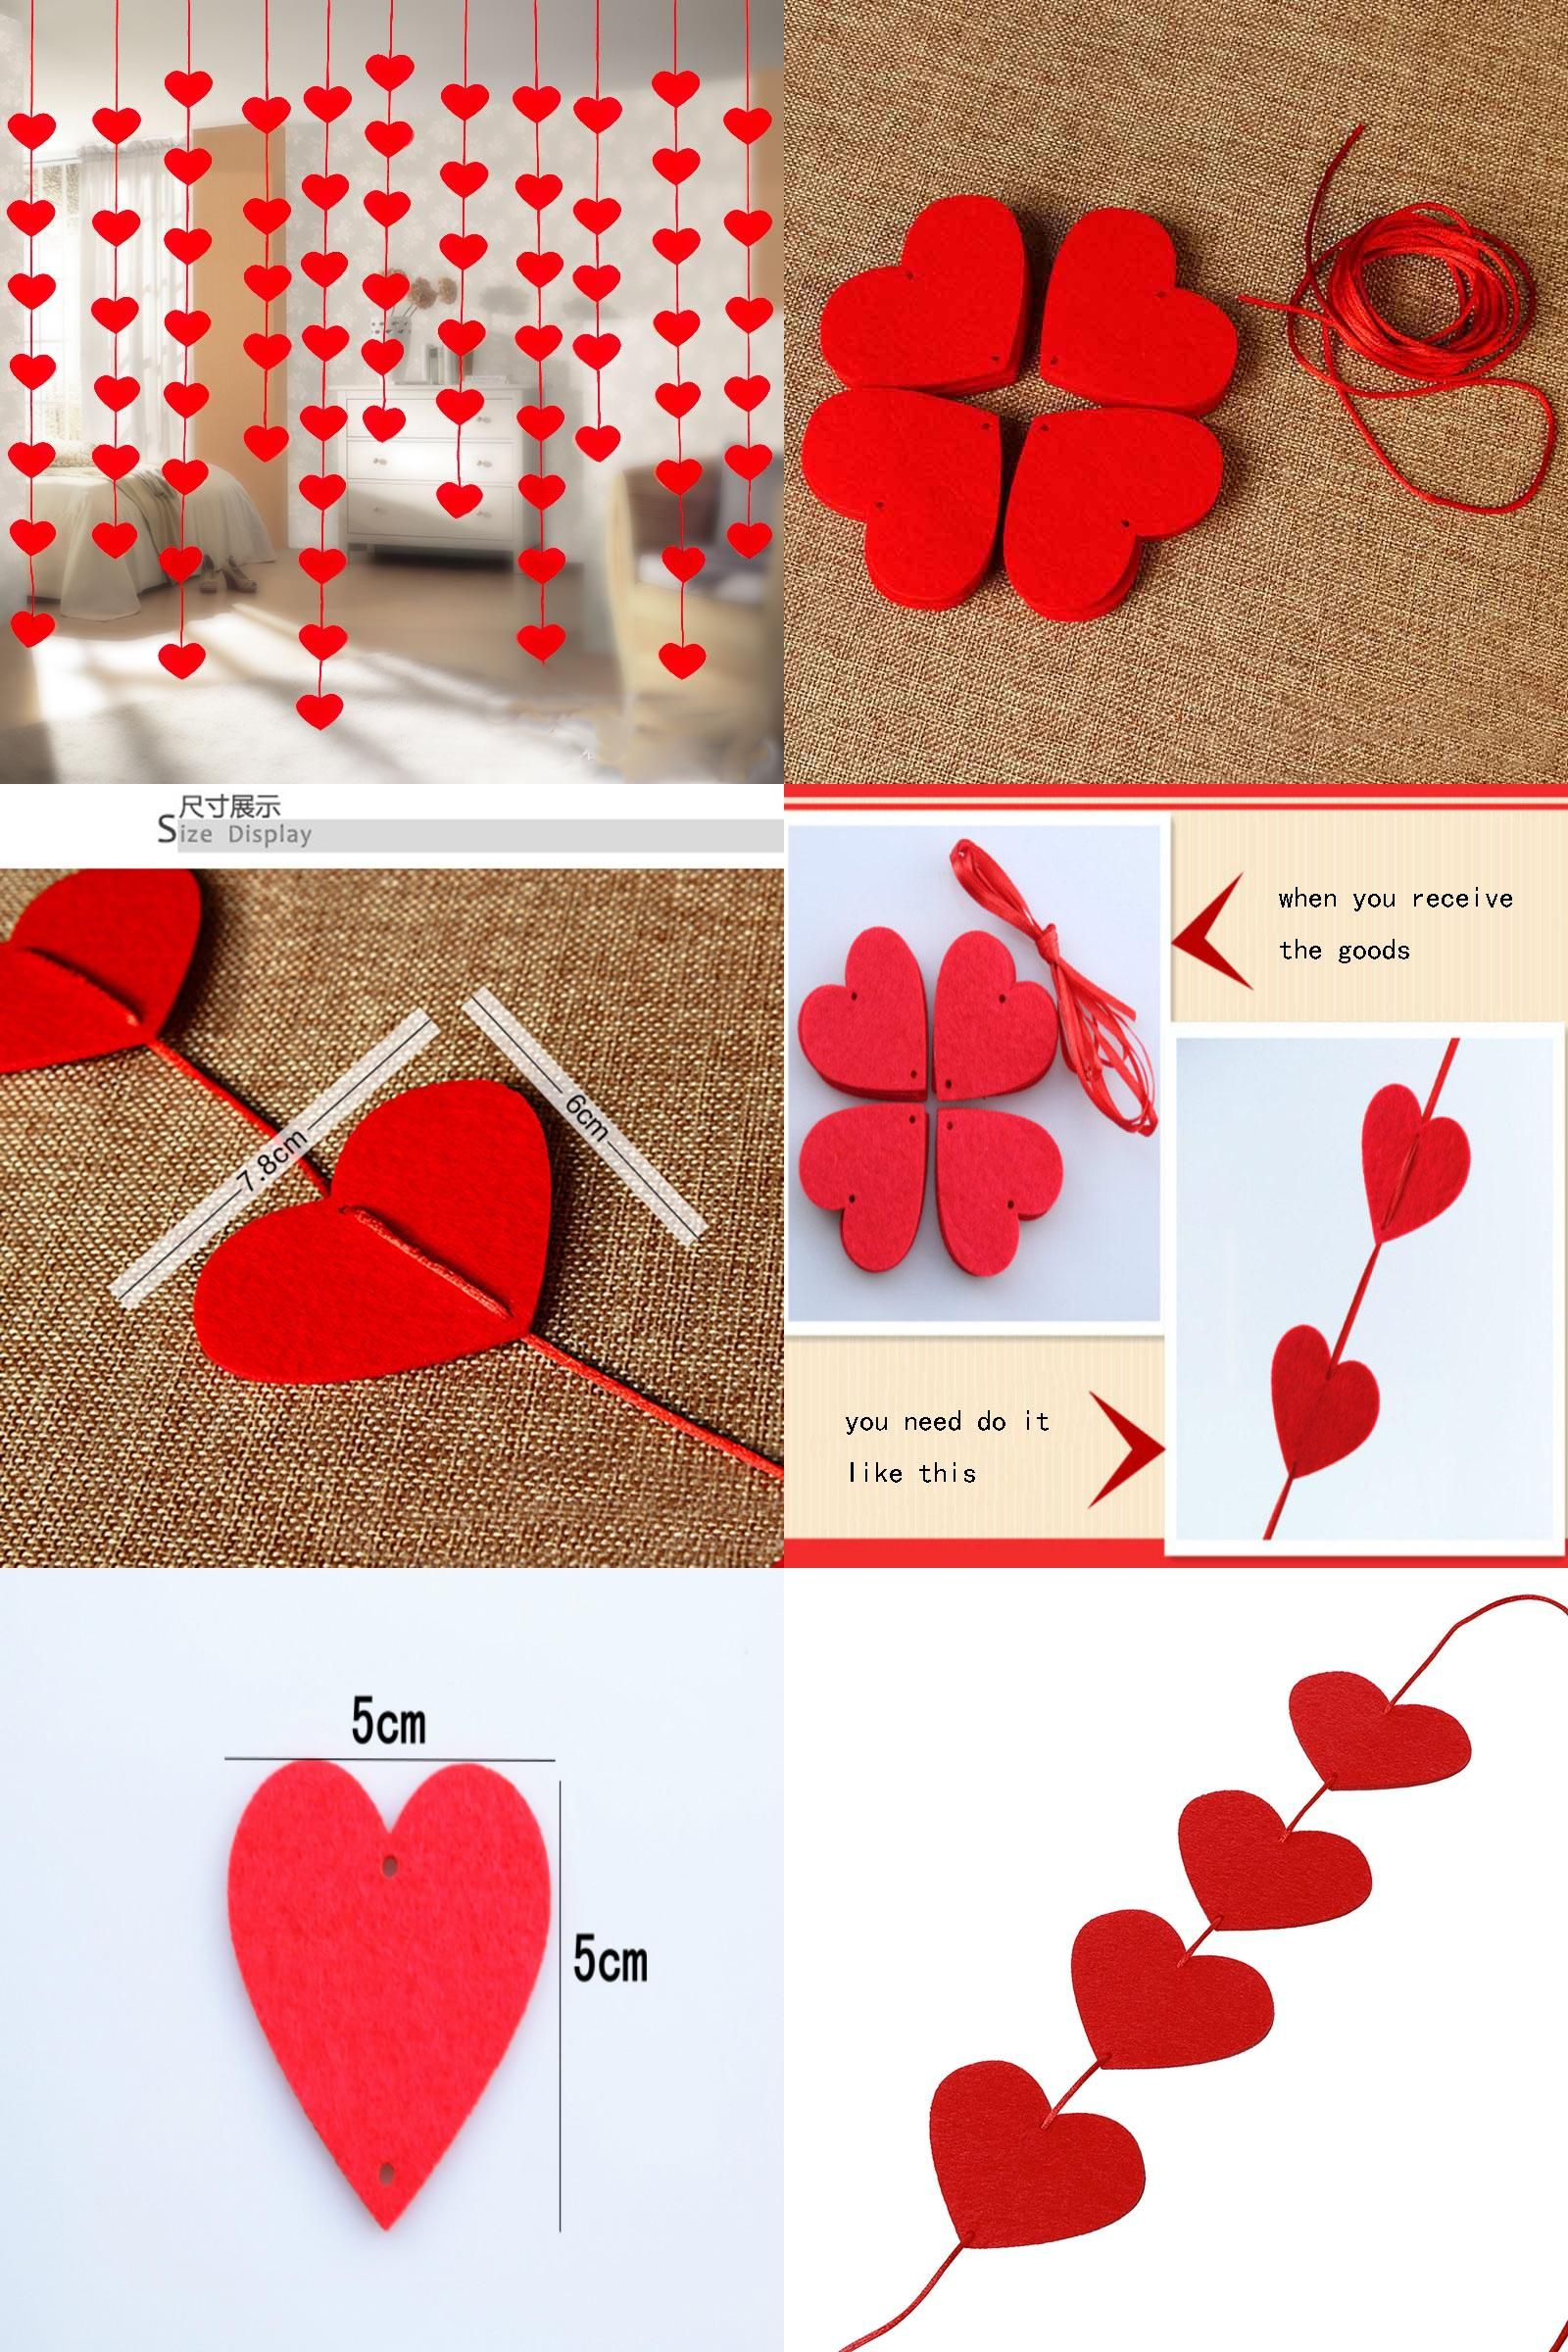 [Visit to Buy] 16 Hearts Love Heart Curtain Romantic Valentine Hearts Ornaments Non-woven Garland For Home Wedding Party Decoration 8Z